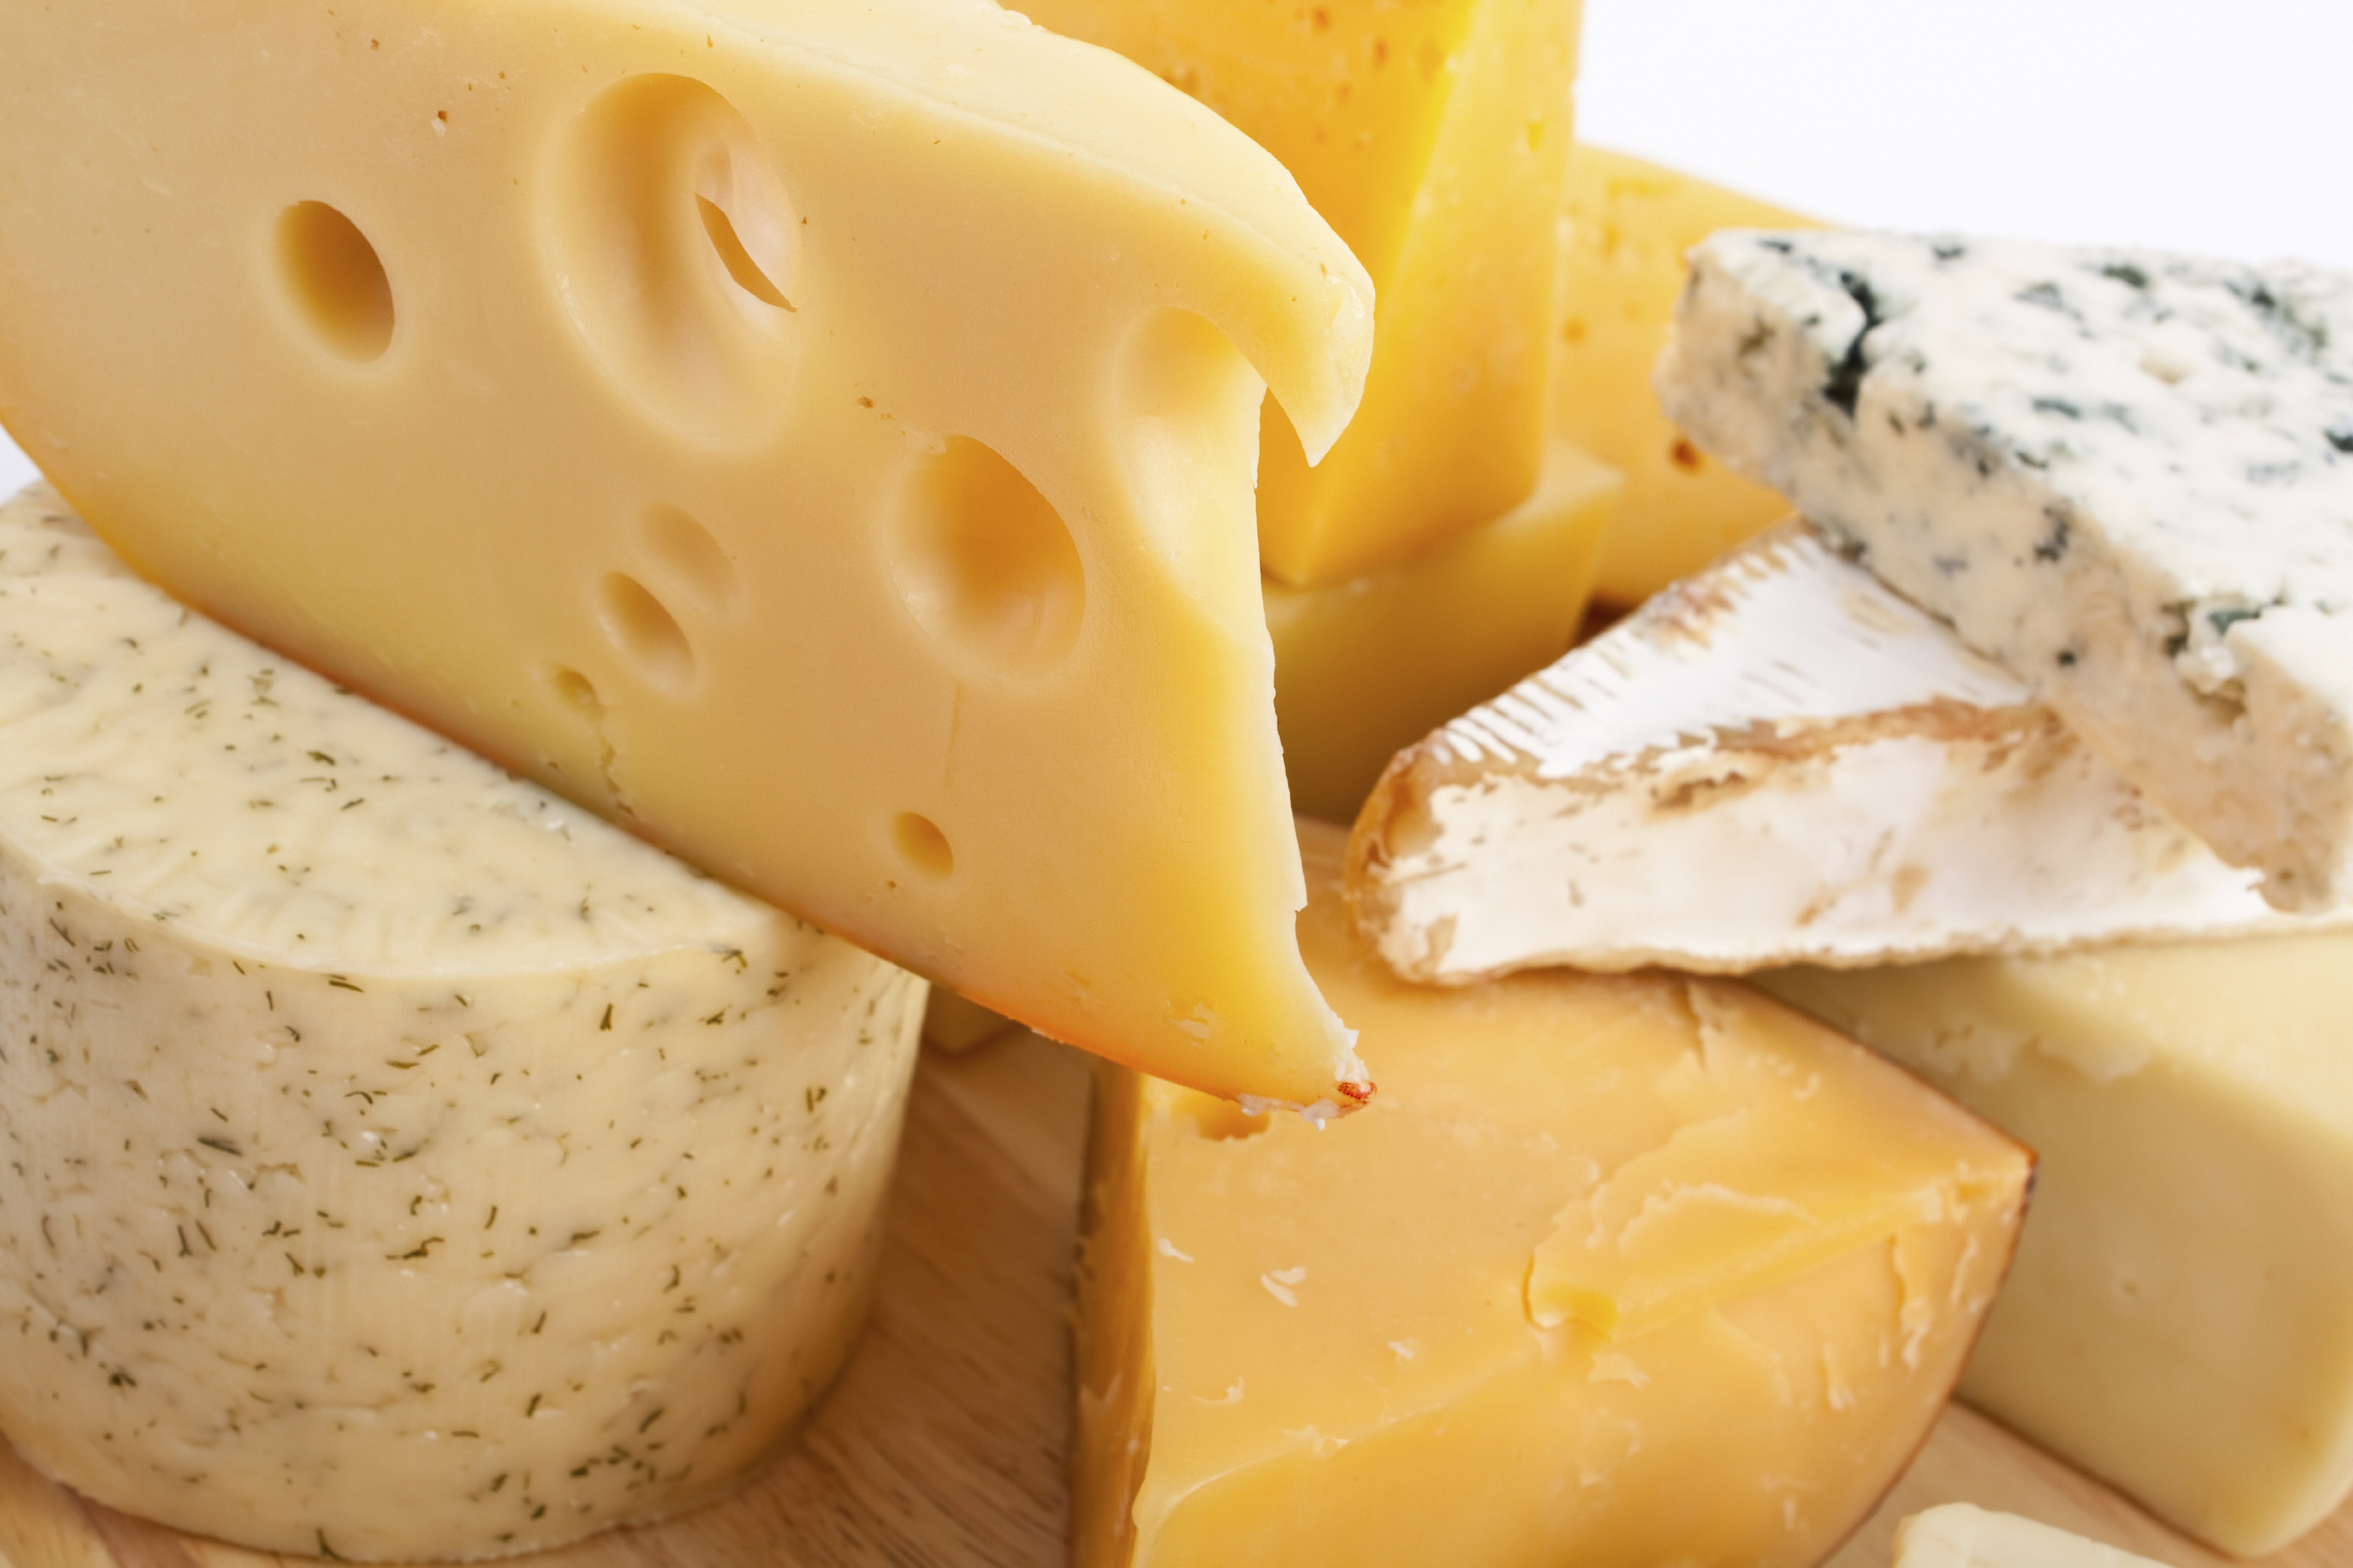 What Foods Can A Lactose Intolerant Person Eat